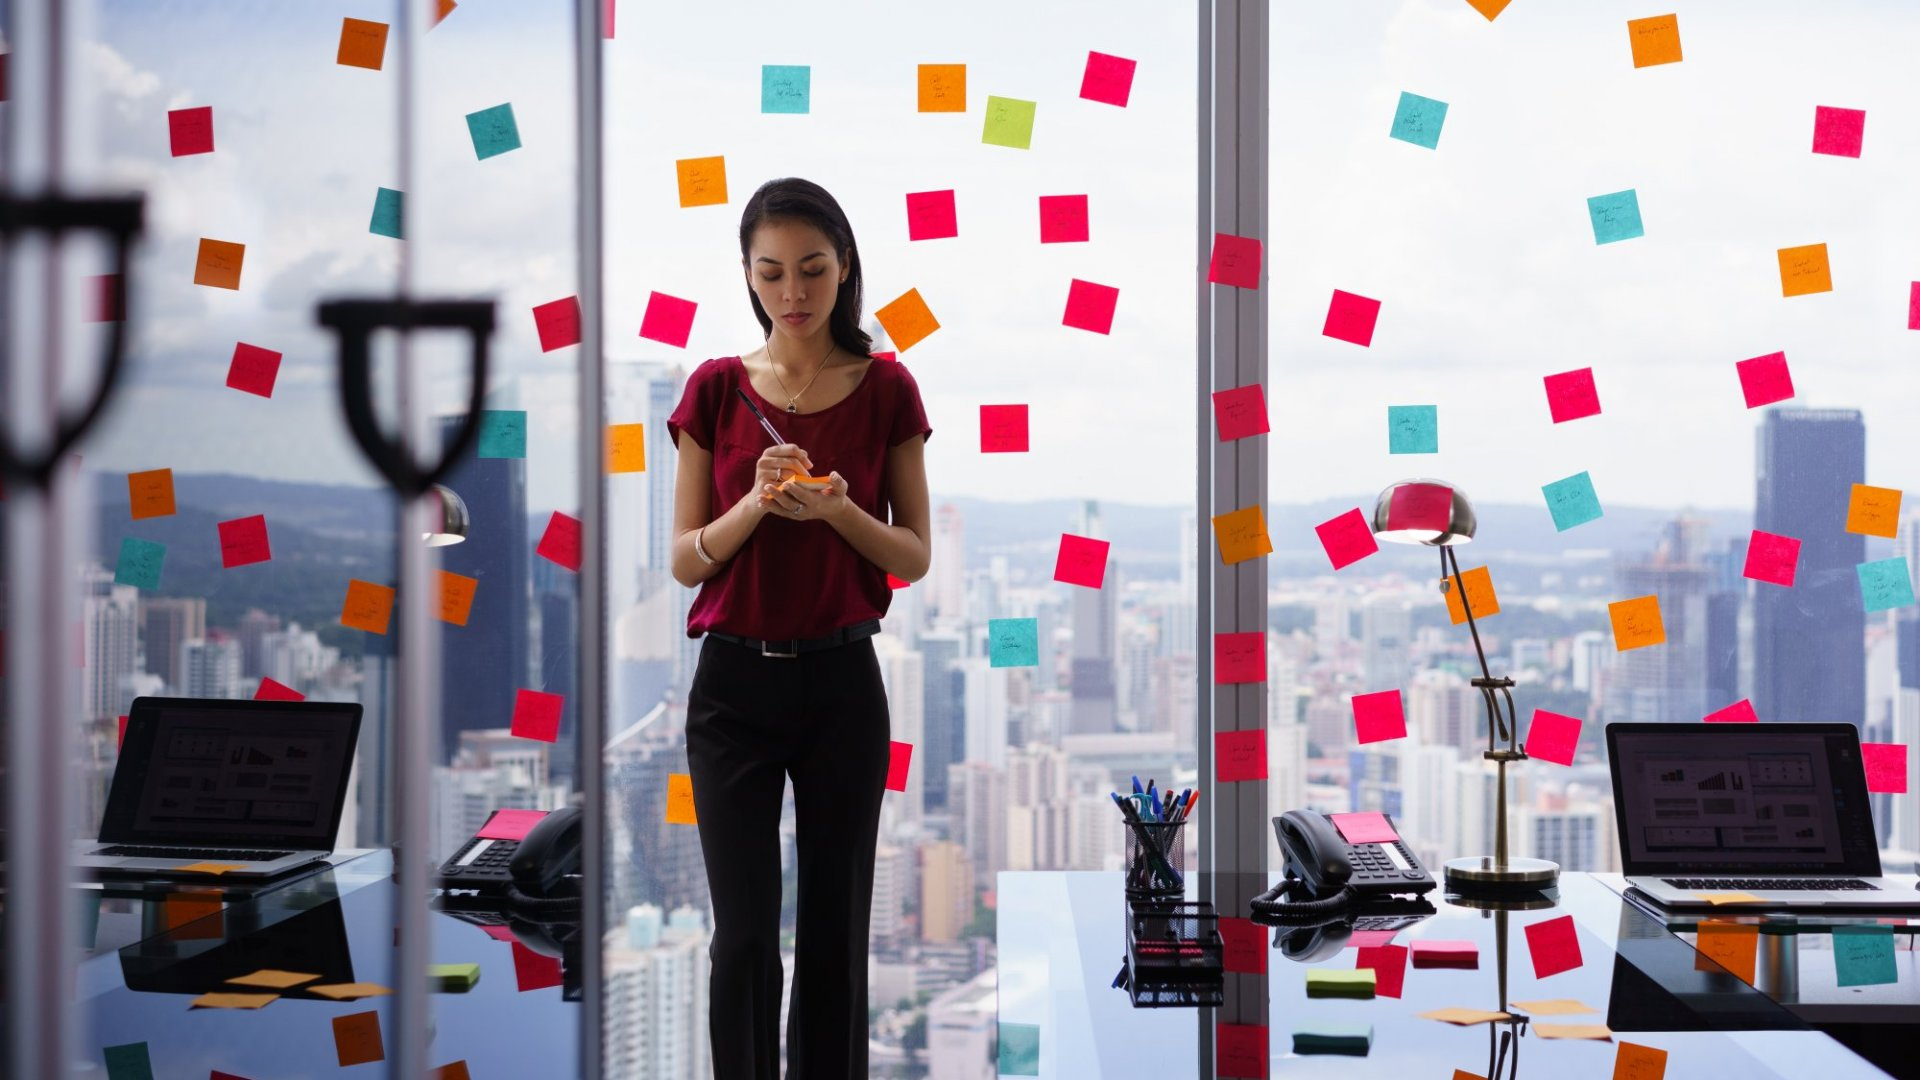 4 Ways to Stay Present During the Crazy Busy Times at Work